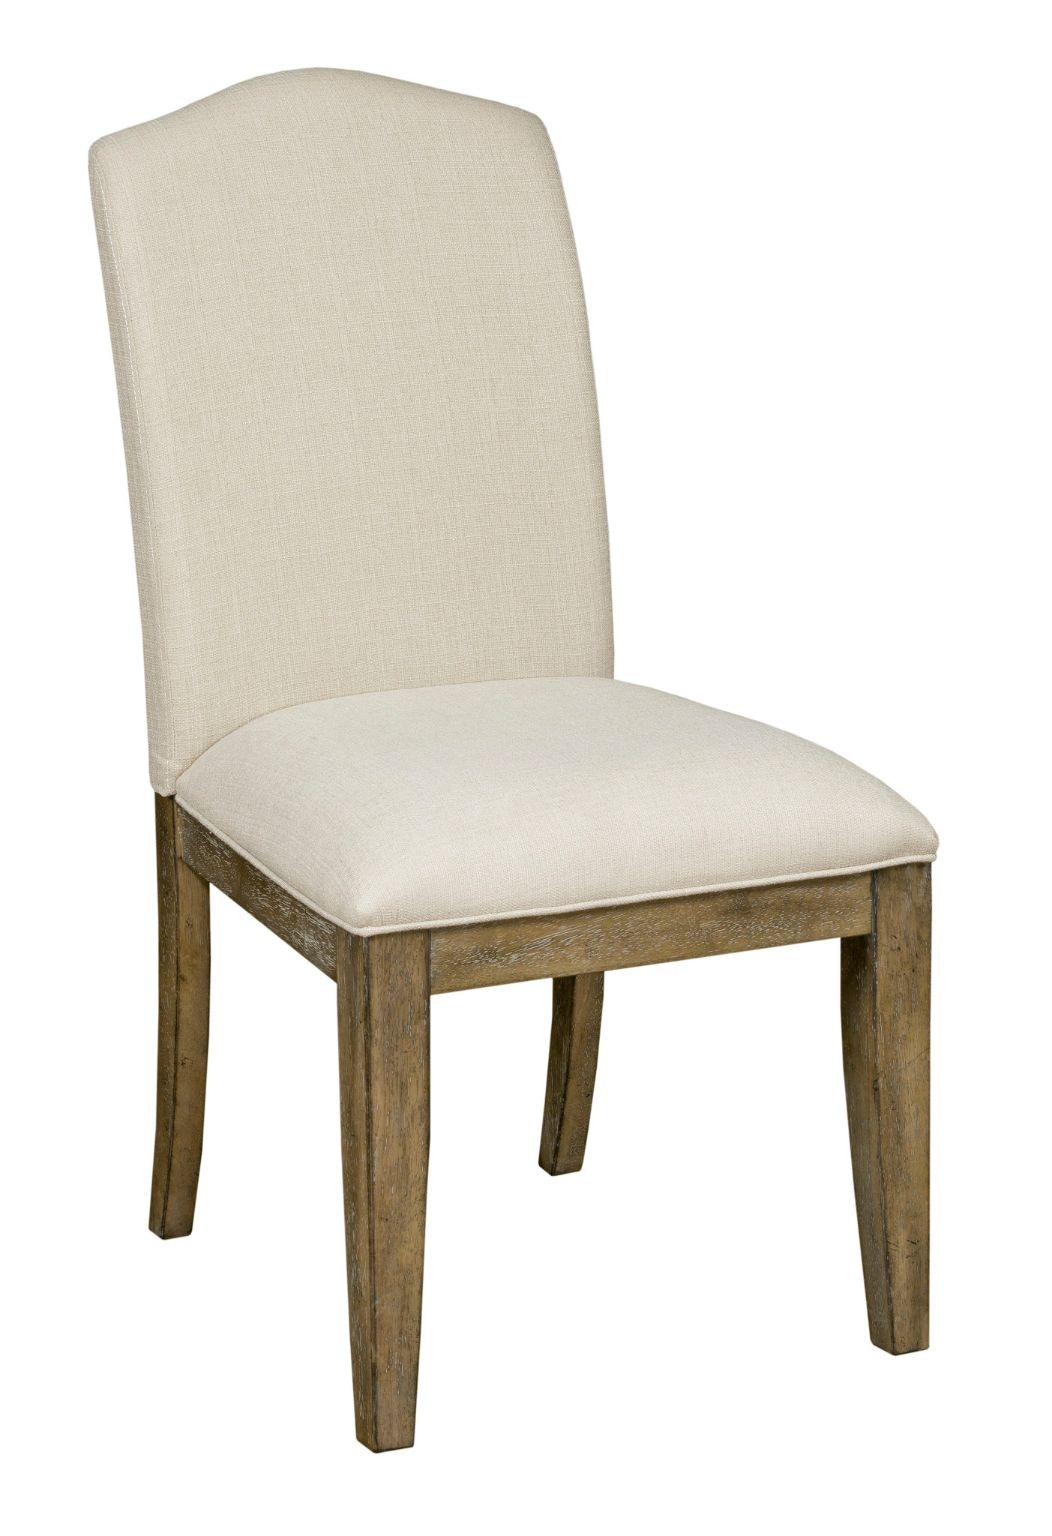 Kincaid Furniture Parsons Side Chair 663 641 From Walter E. Smithe  Furniture + Design